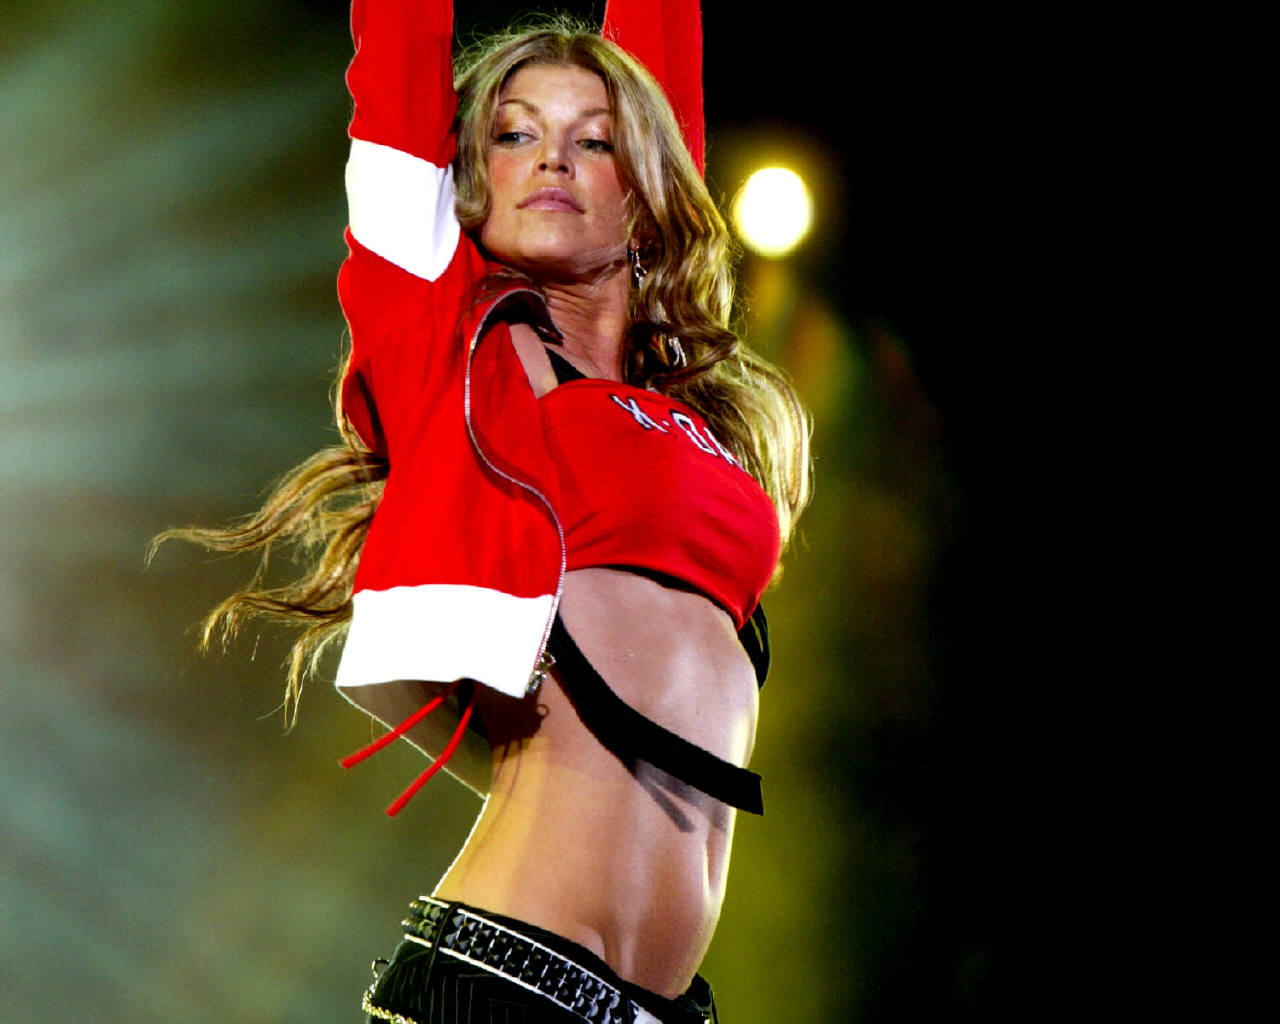 Fergie images Fergie HD wallpaper and background photos (171361) Fergie